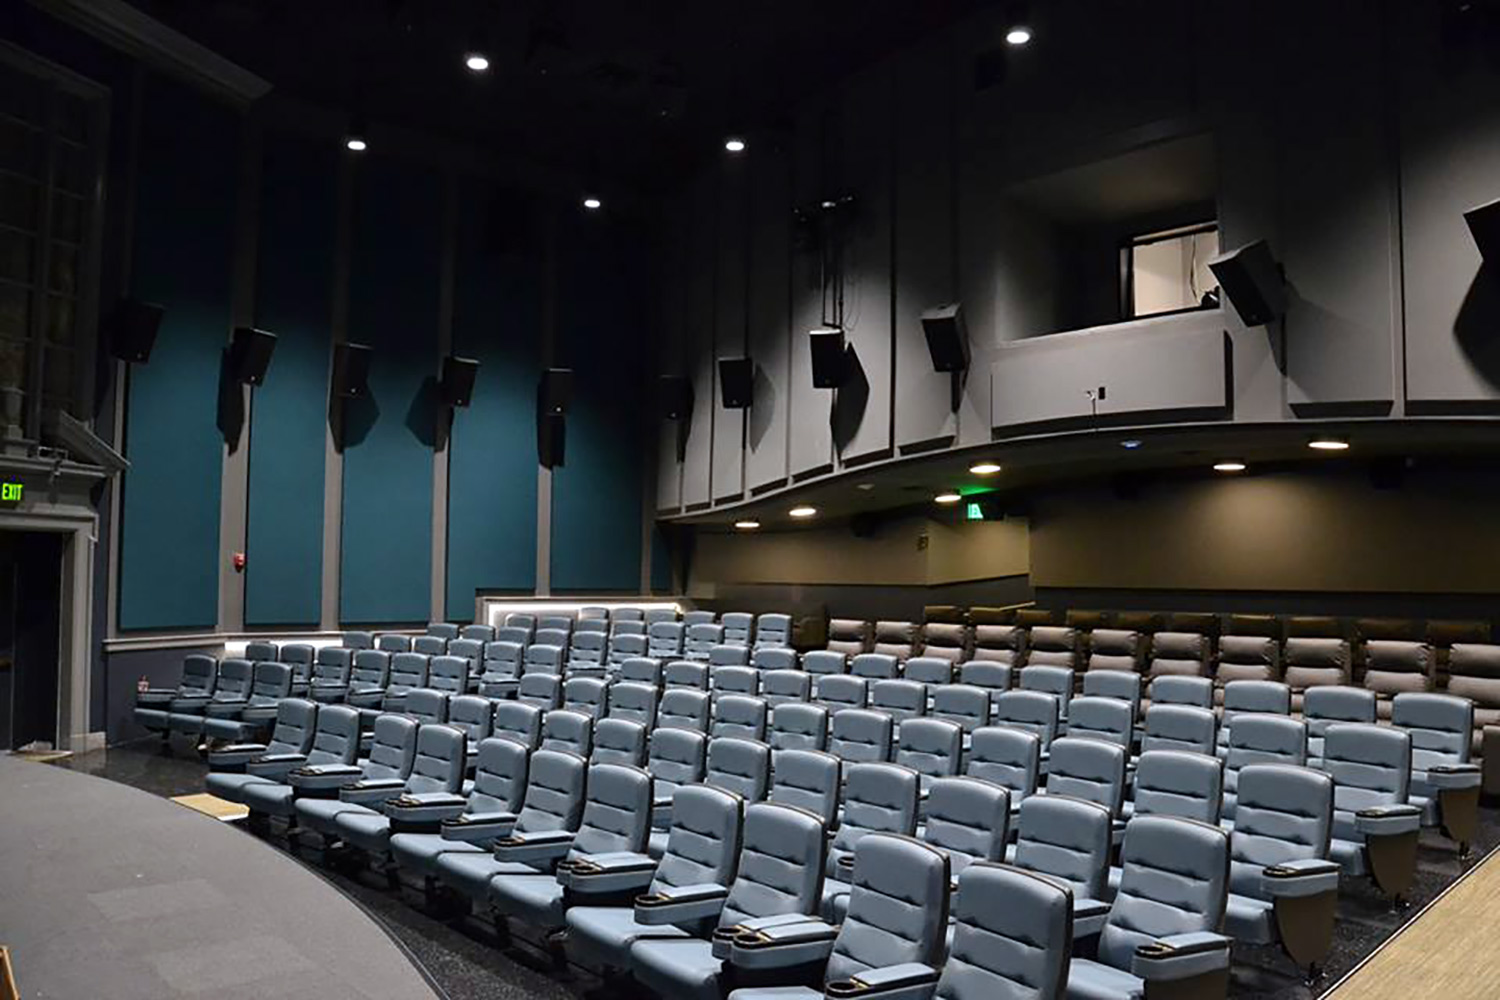 The Bedford Playhouse/Clive Davis Arts Center is a classic movie theater in the final stages of a total renovation. WSDG is providing complete acoustic and A/V design and consultation for the complex. Main Dolby Atmos Theater